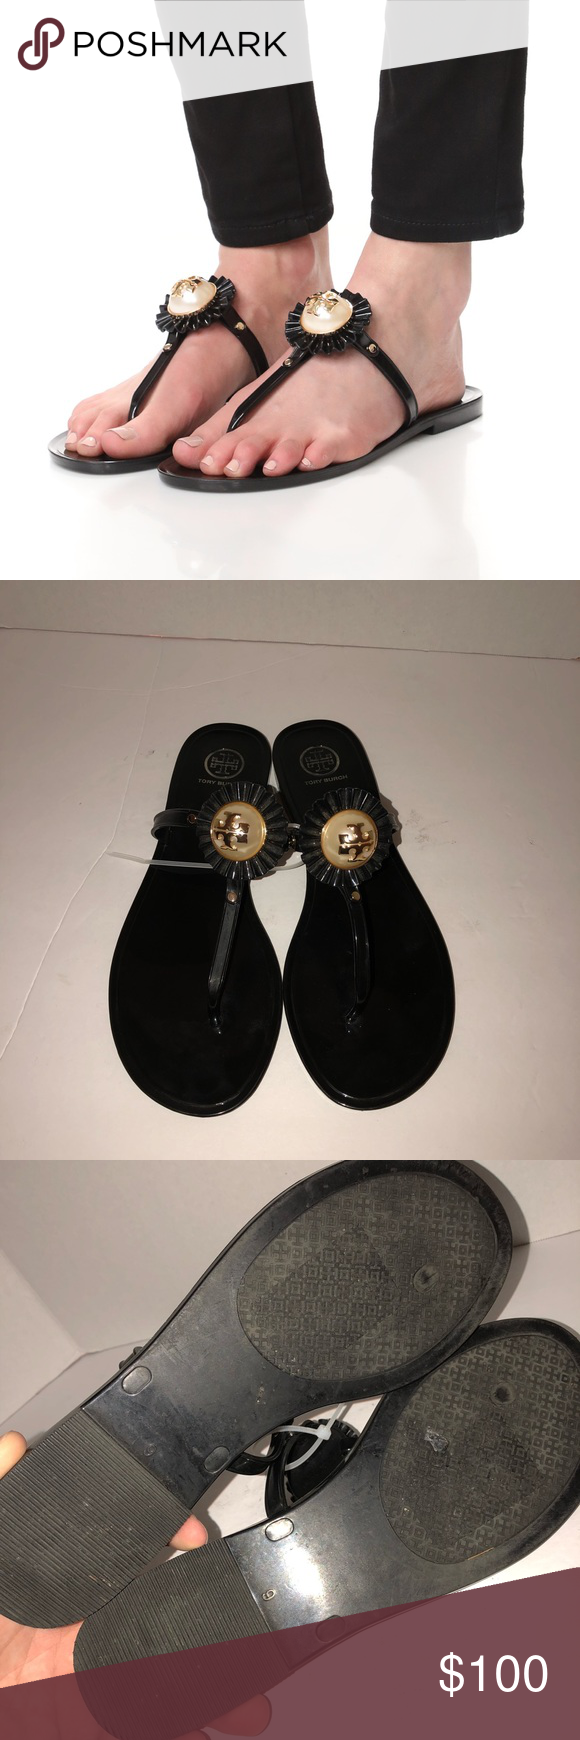 b50e69045818 Tory Burch melody mini miller things jelly sandal Worn before no box Tory  Burch Shoes Sandals